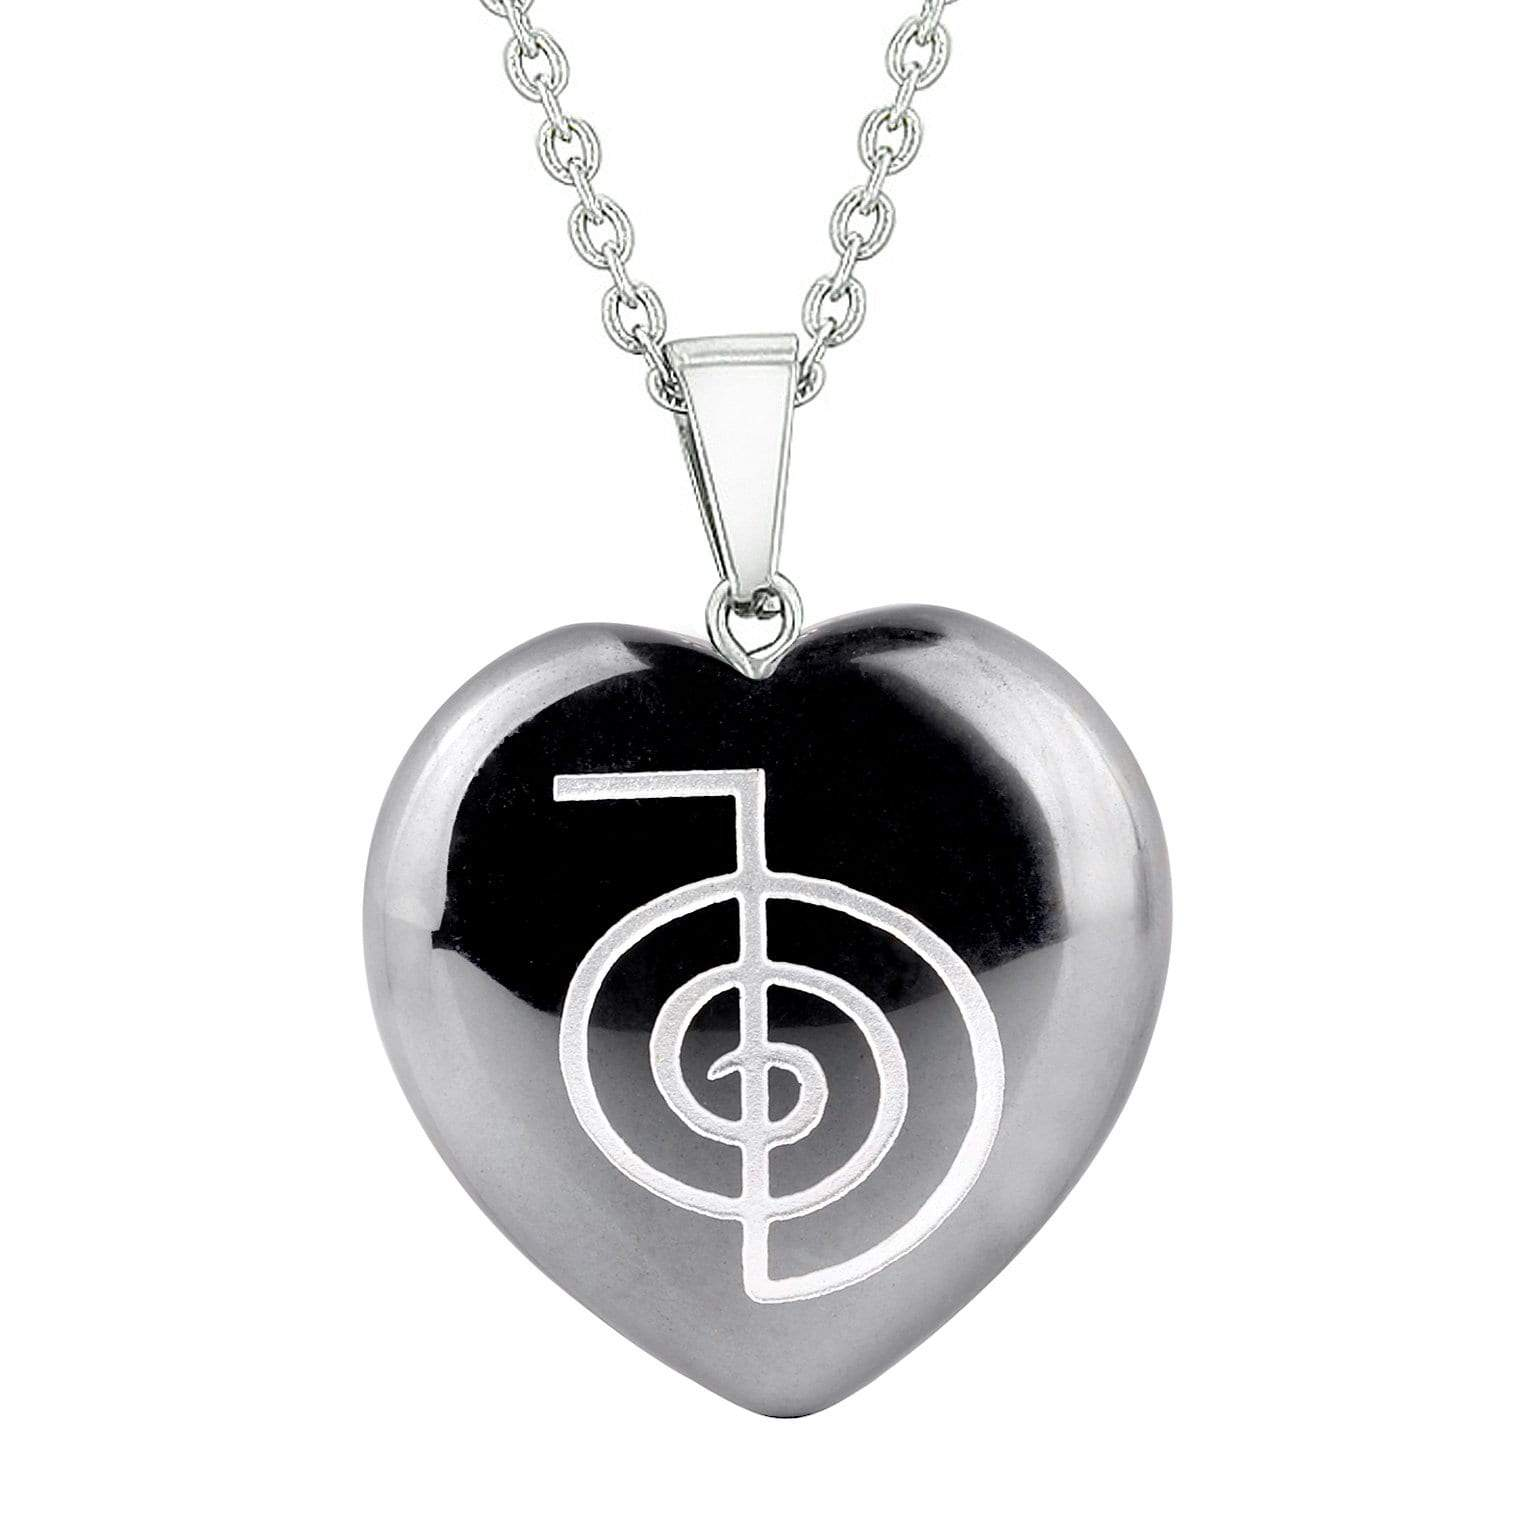 Amulet Choku Rei Reiki Magical Powers Protection Energy Hematite Puffy Heart Pendant Necklace